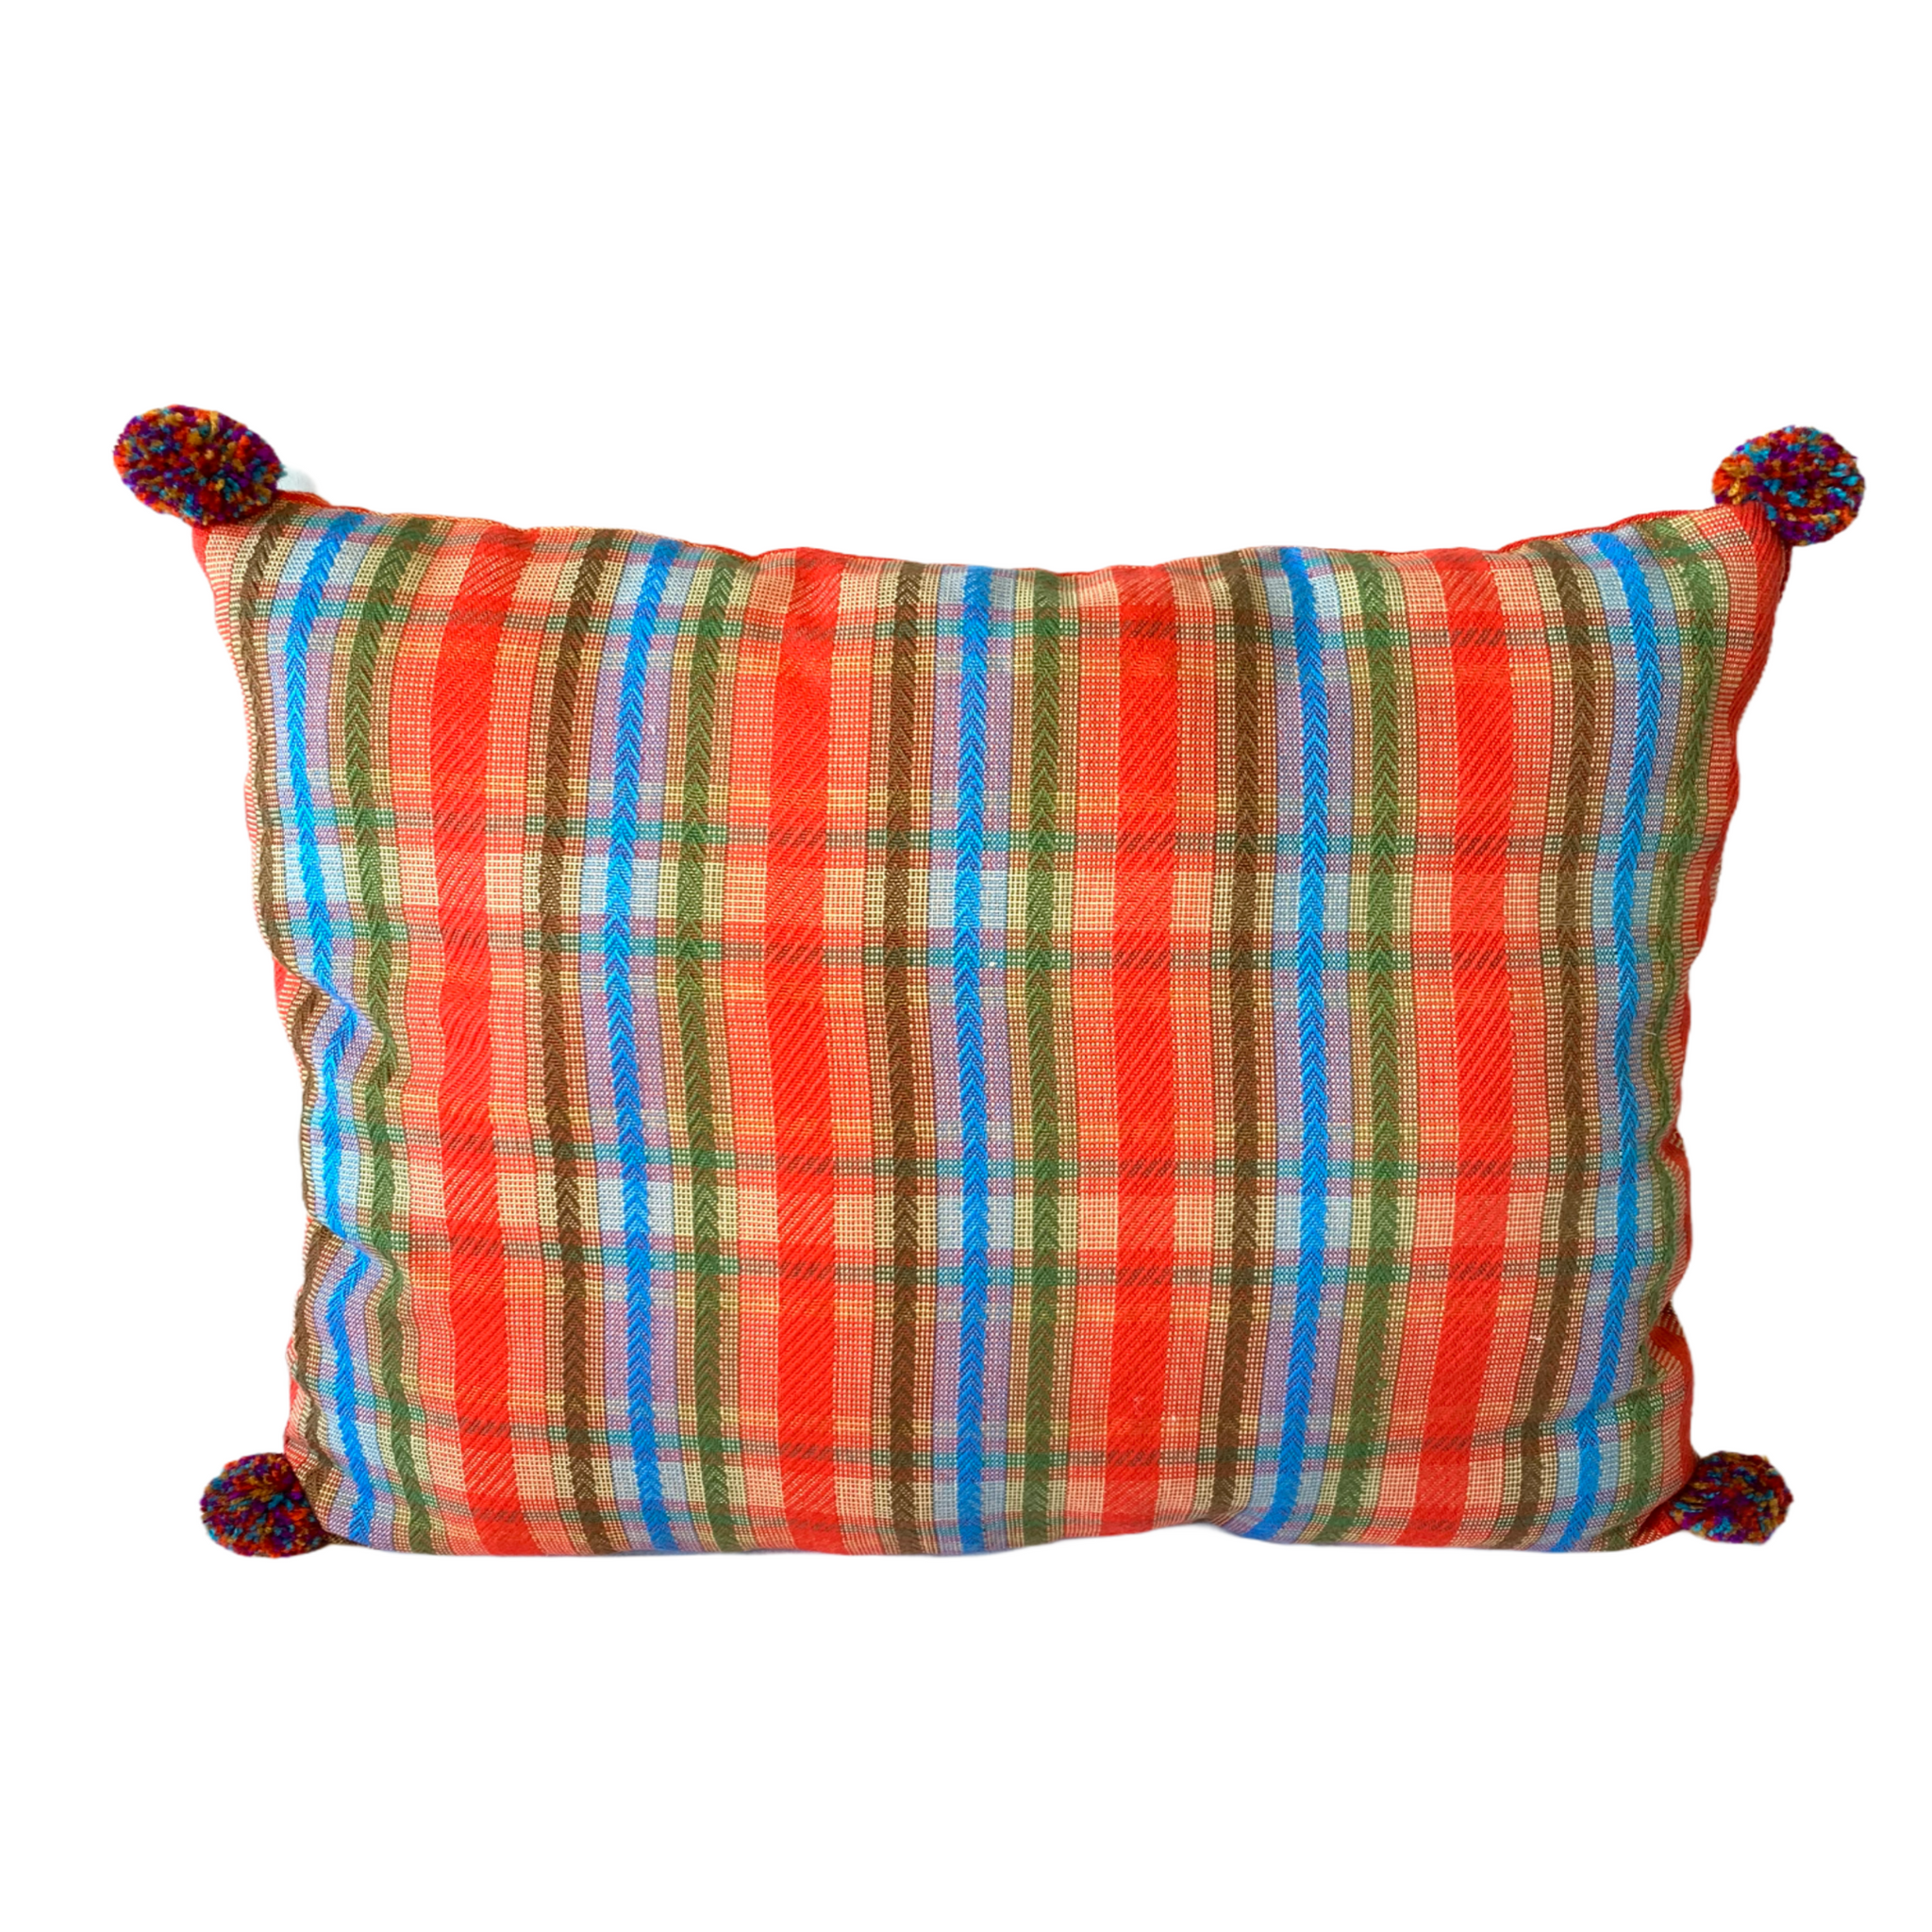 Inabel throw pillow with pompoms